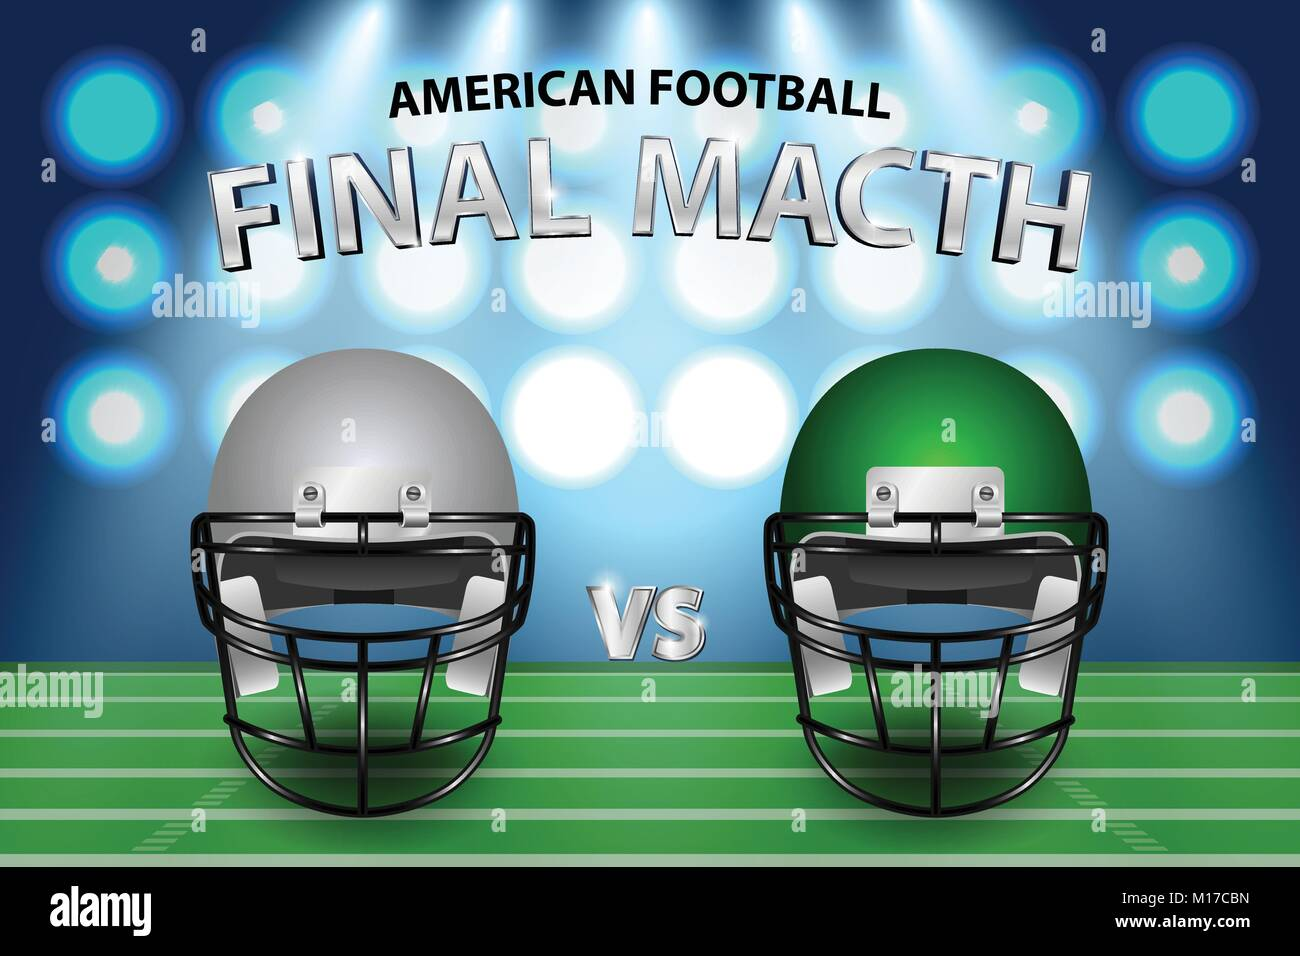 American football final match concept. Silver and green Helmets on field with spotlight background. Vector Illustration. - Stock Vector